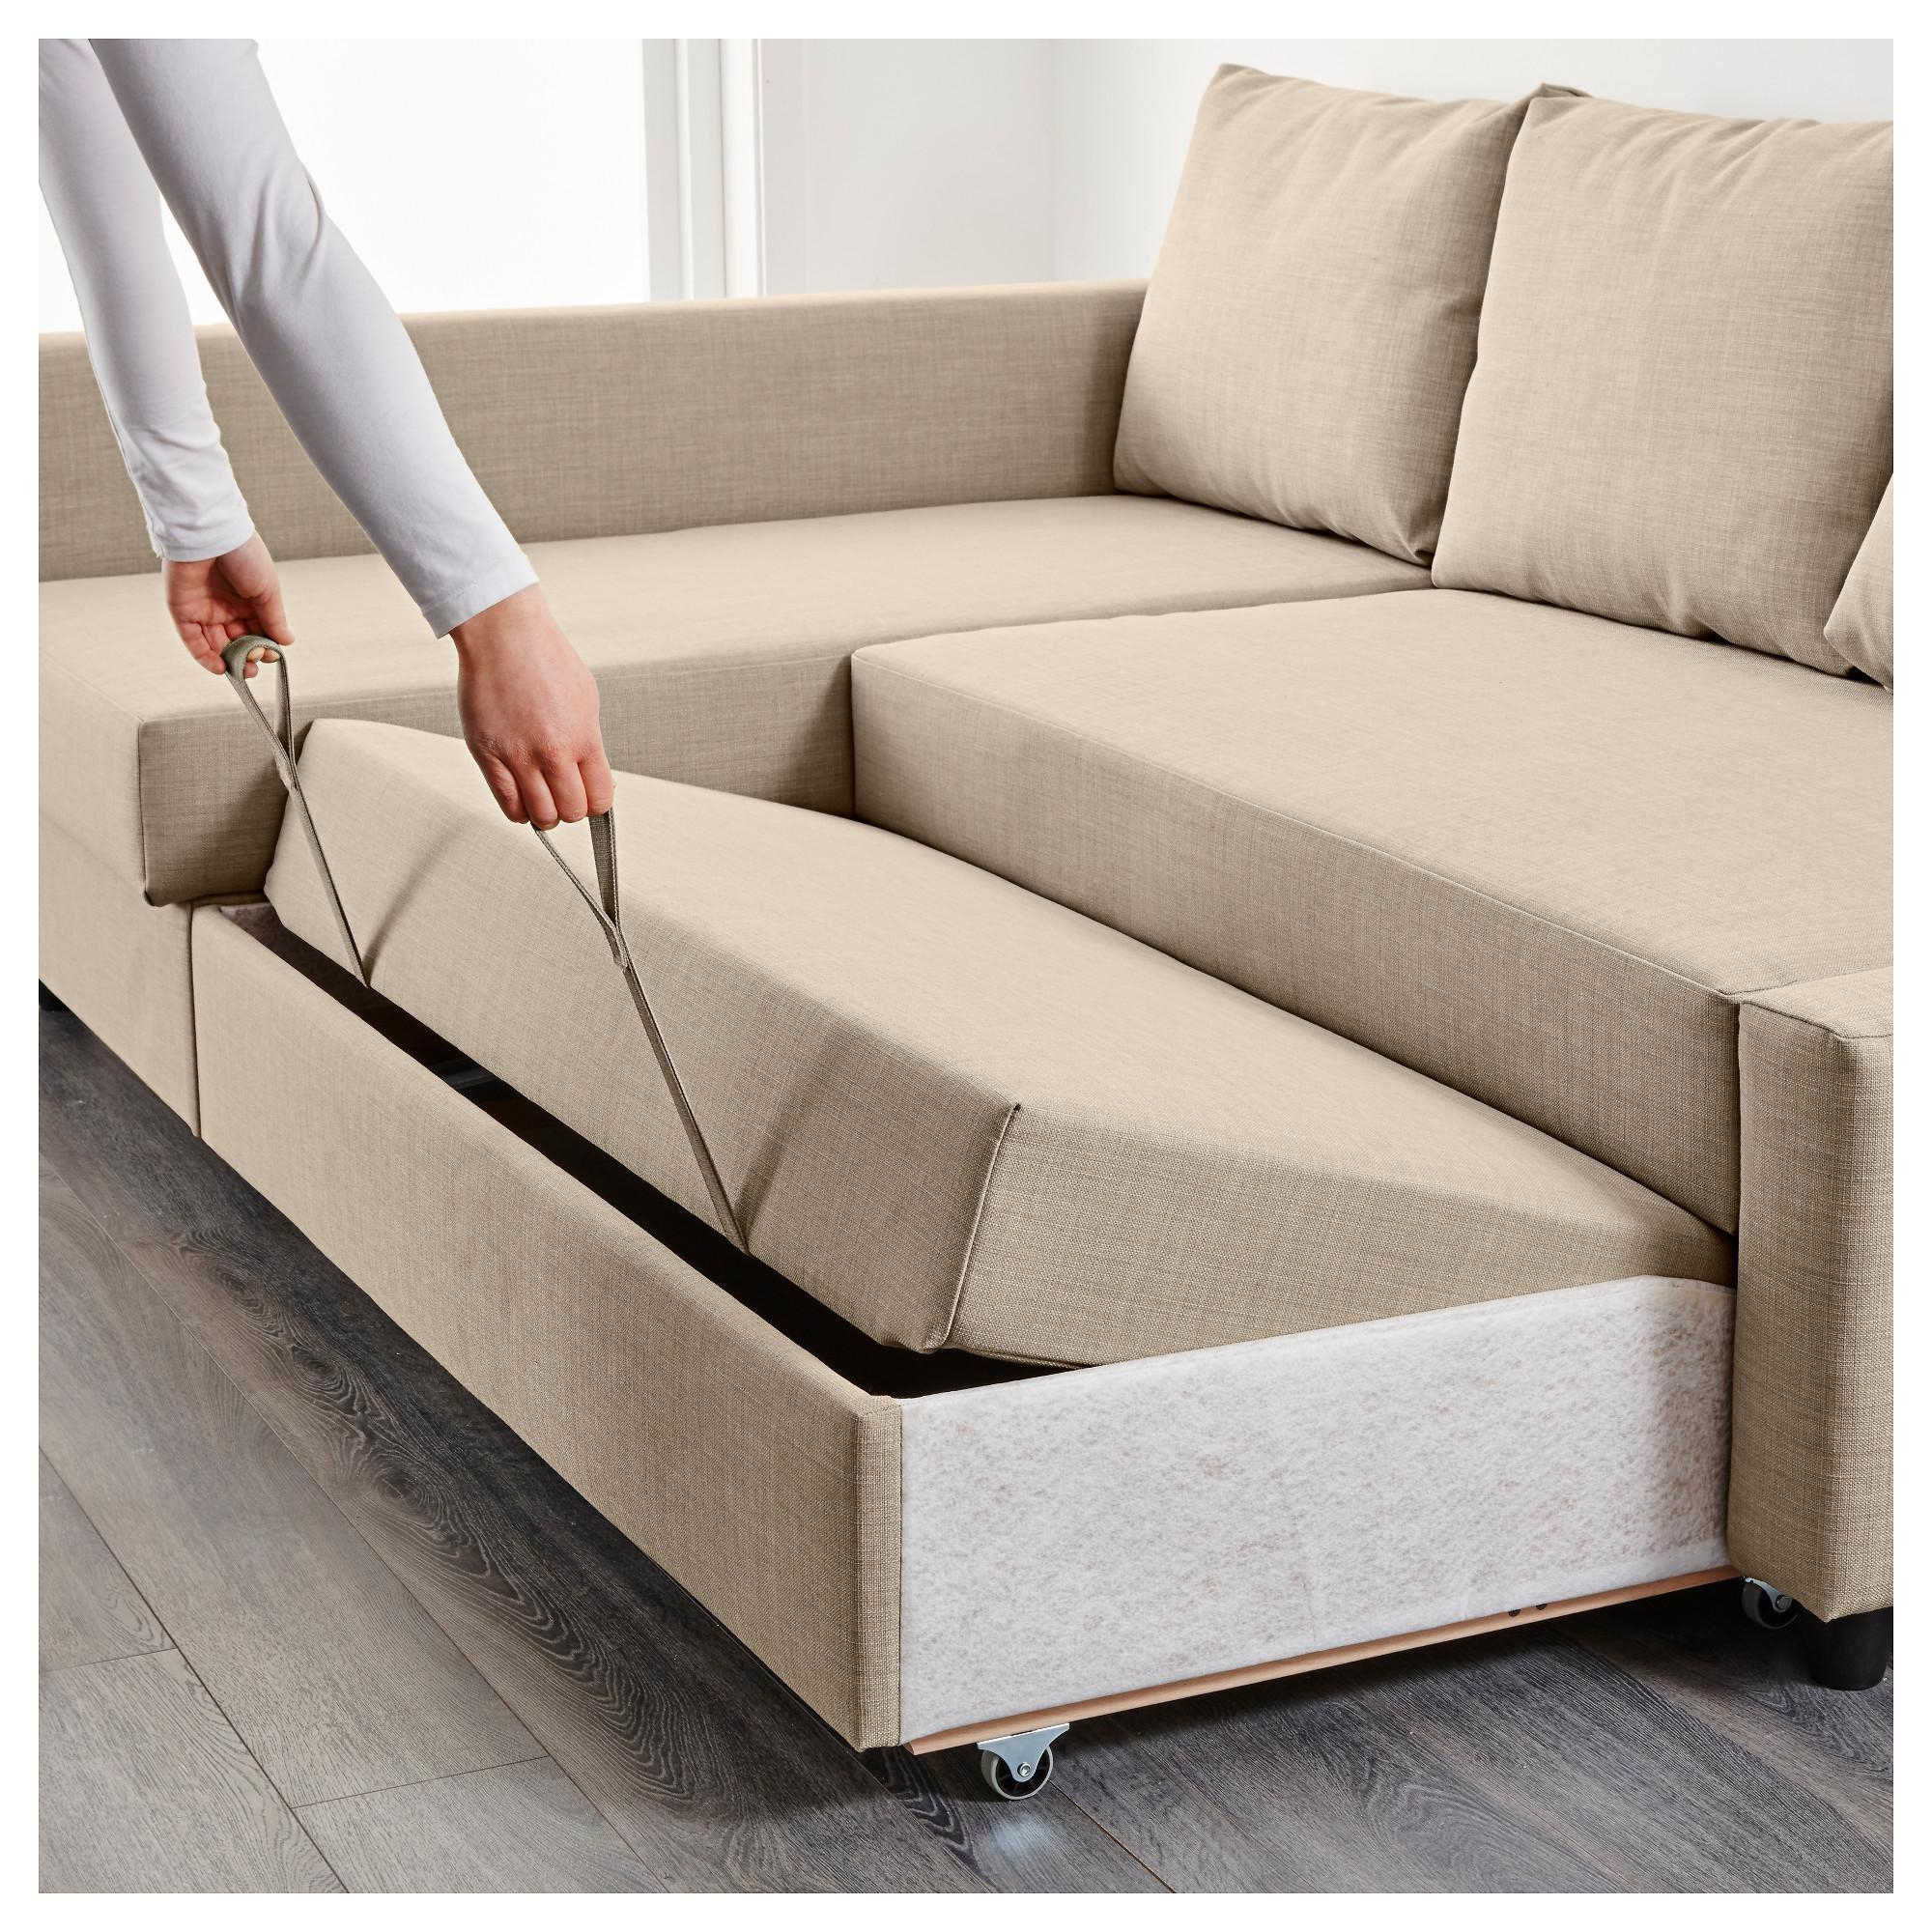 ikea couch sofa sectional manstad mid century sofas under 1000 20 top bed with storage from ideas